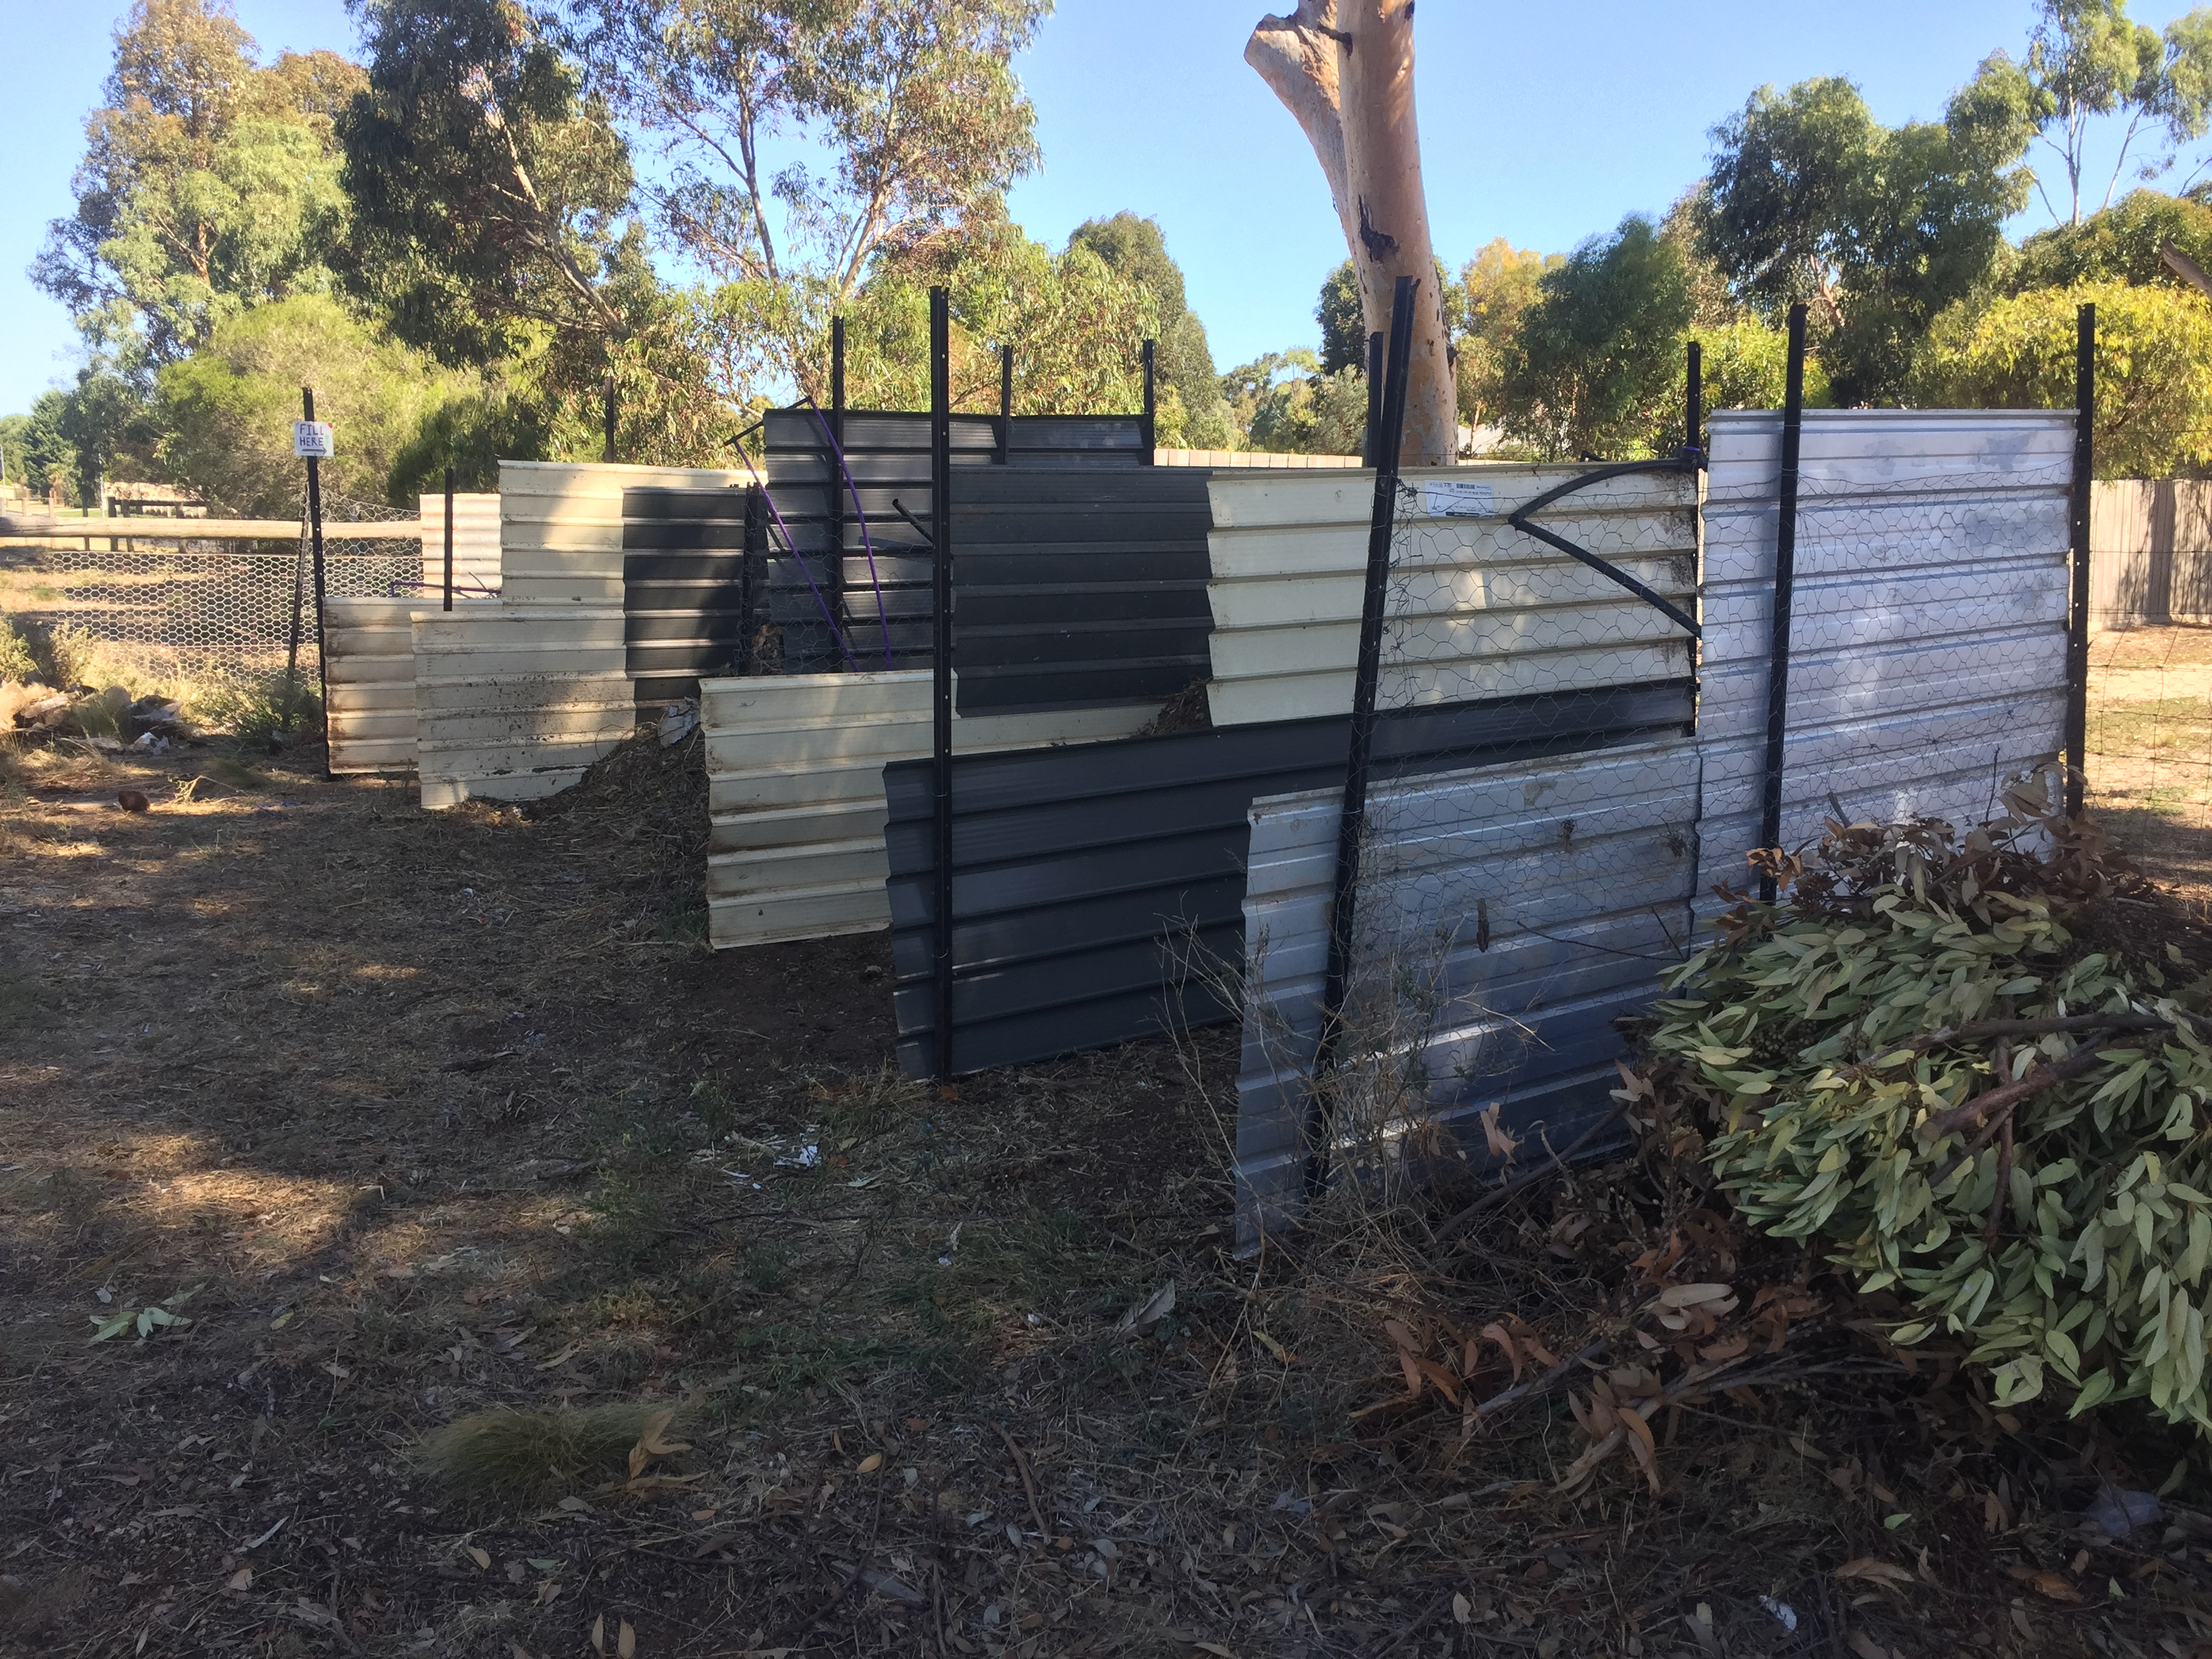 Compost3 – stables